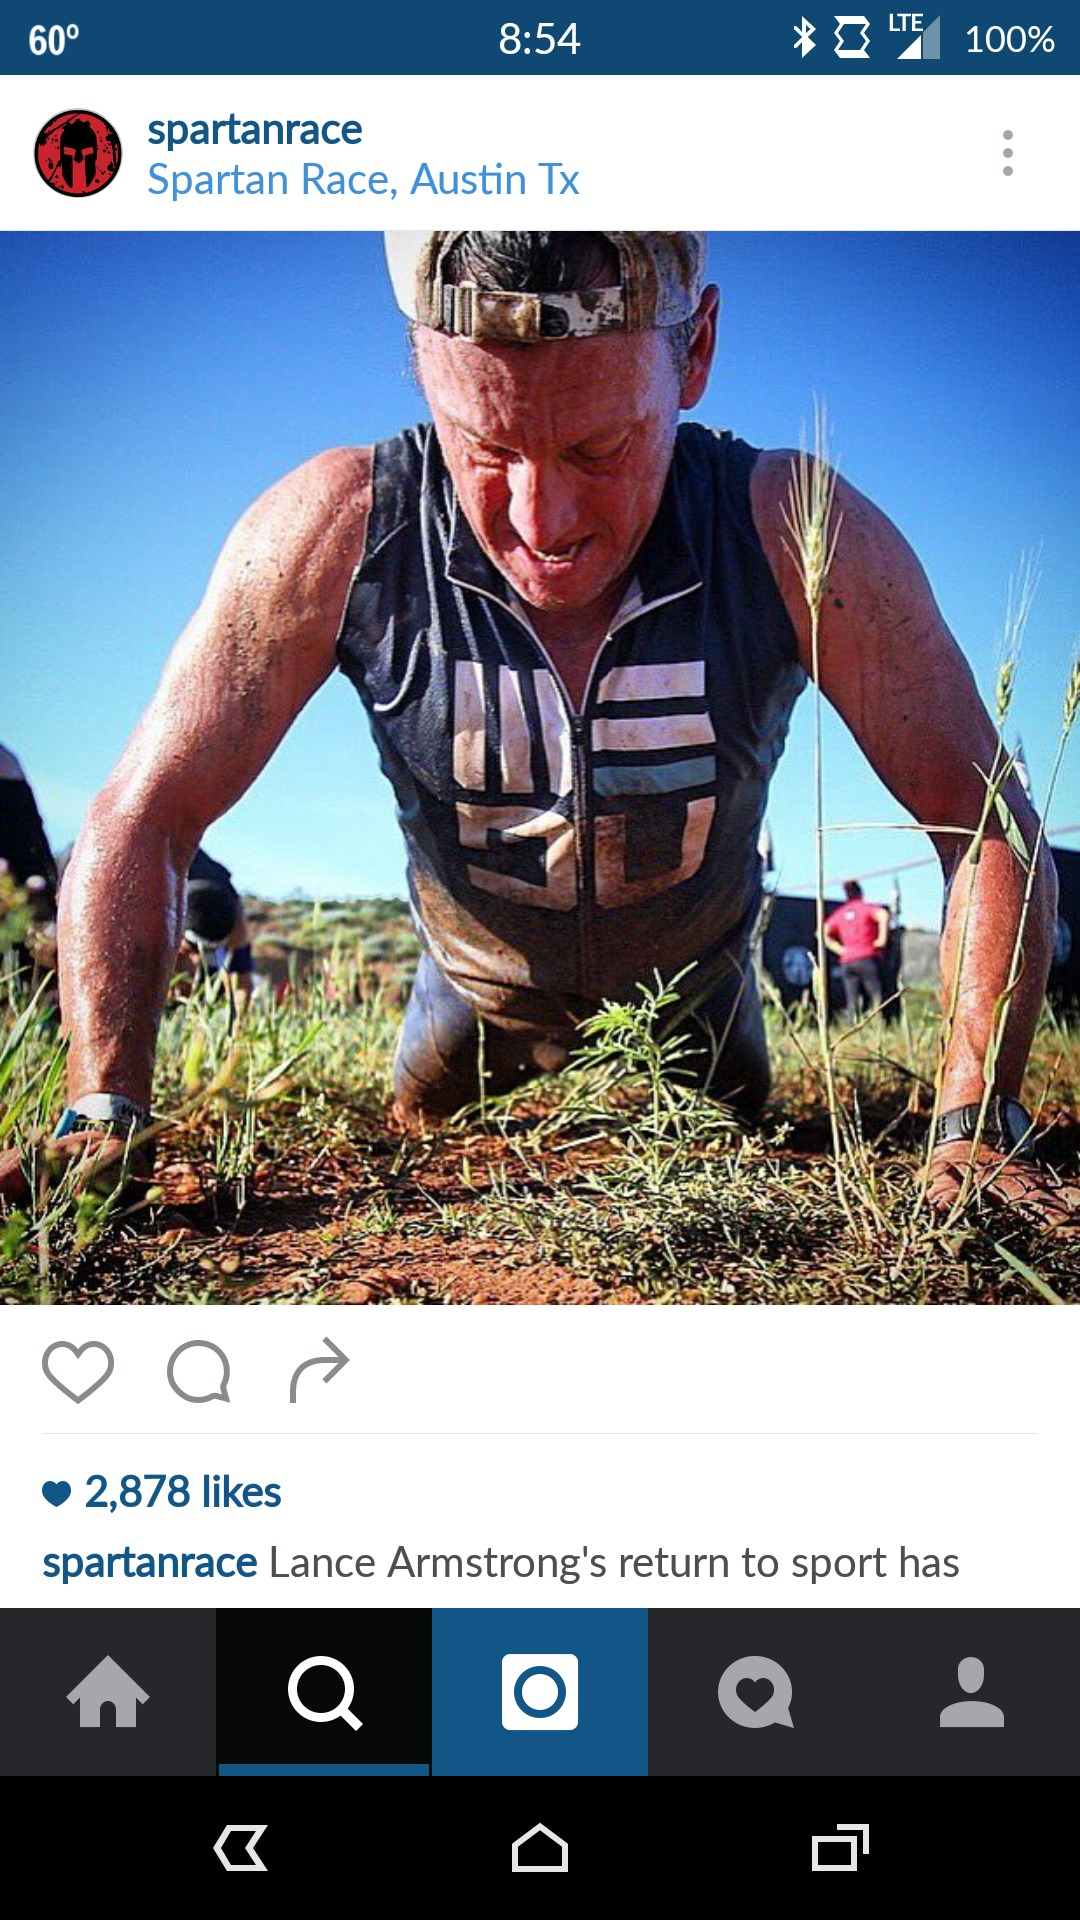 Lance Armstrong at the Austin Spartan Super